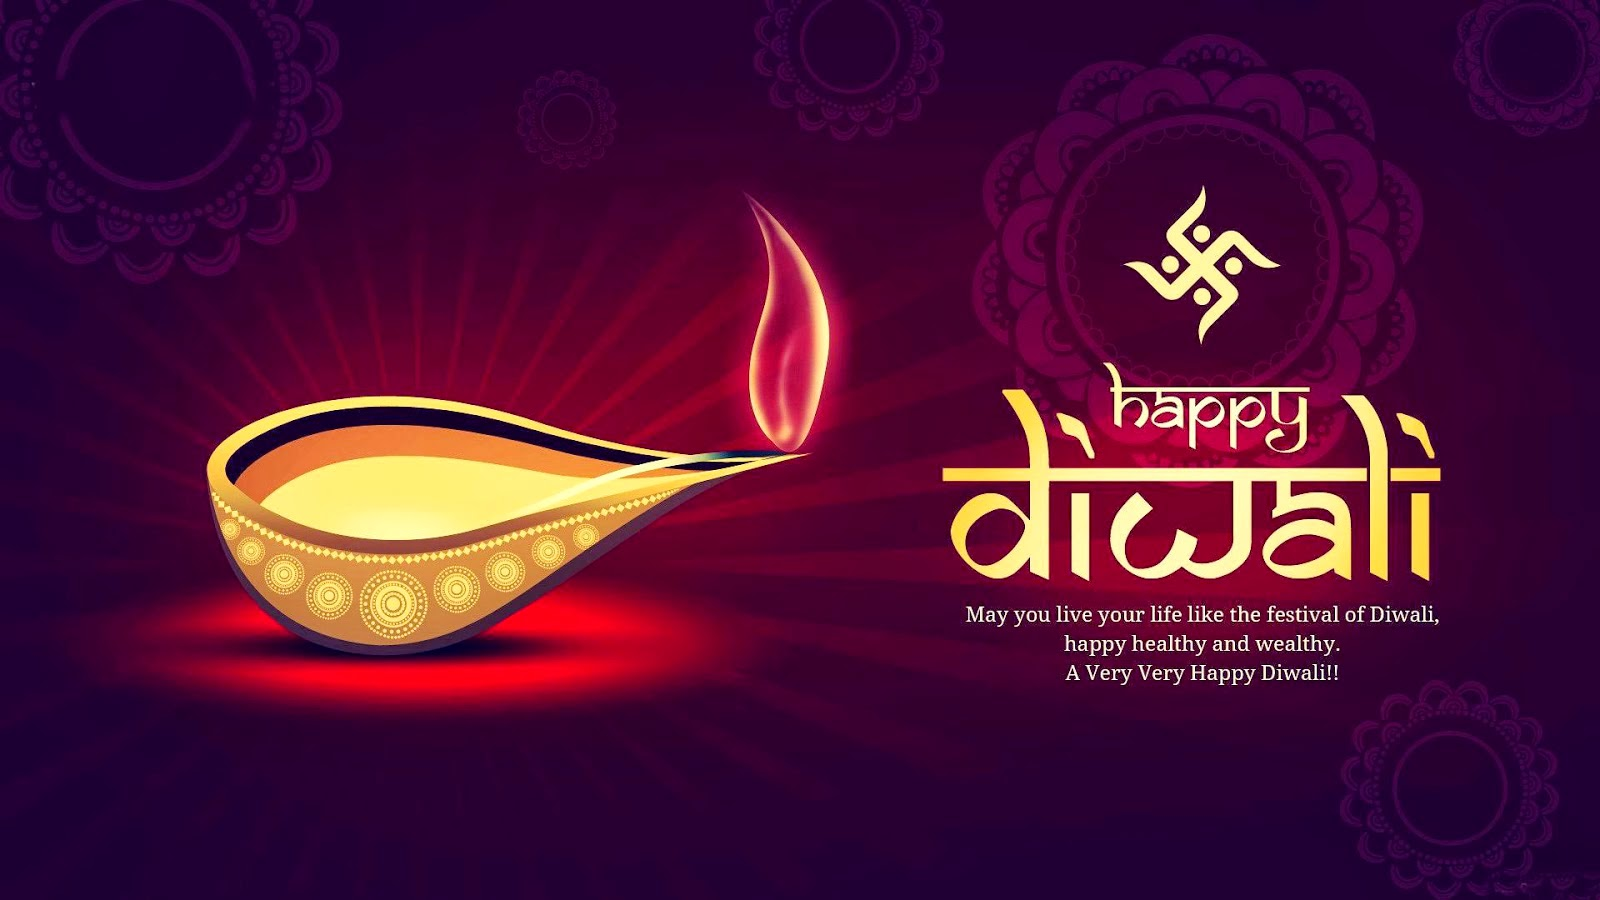 Happy Diwali 2014 Wallpaper Happy Diwali Tatoclub